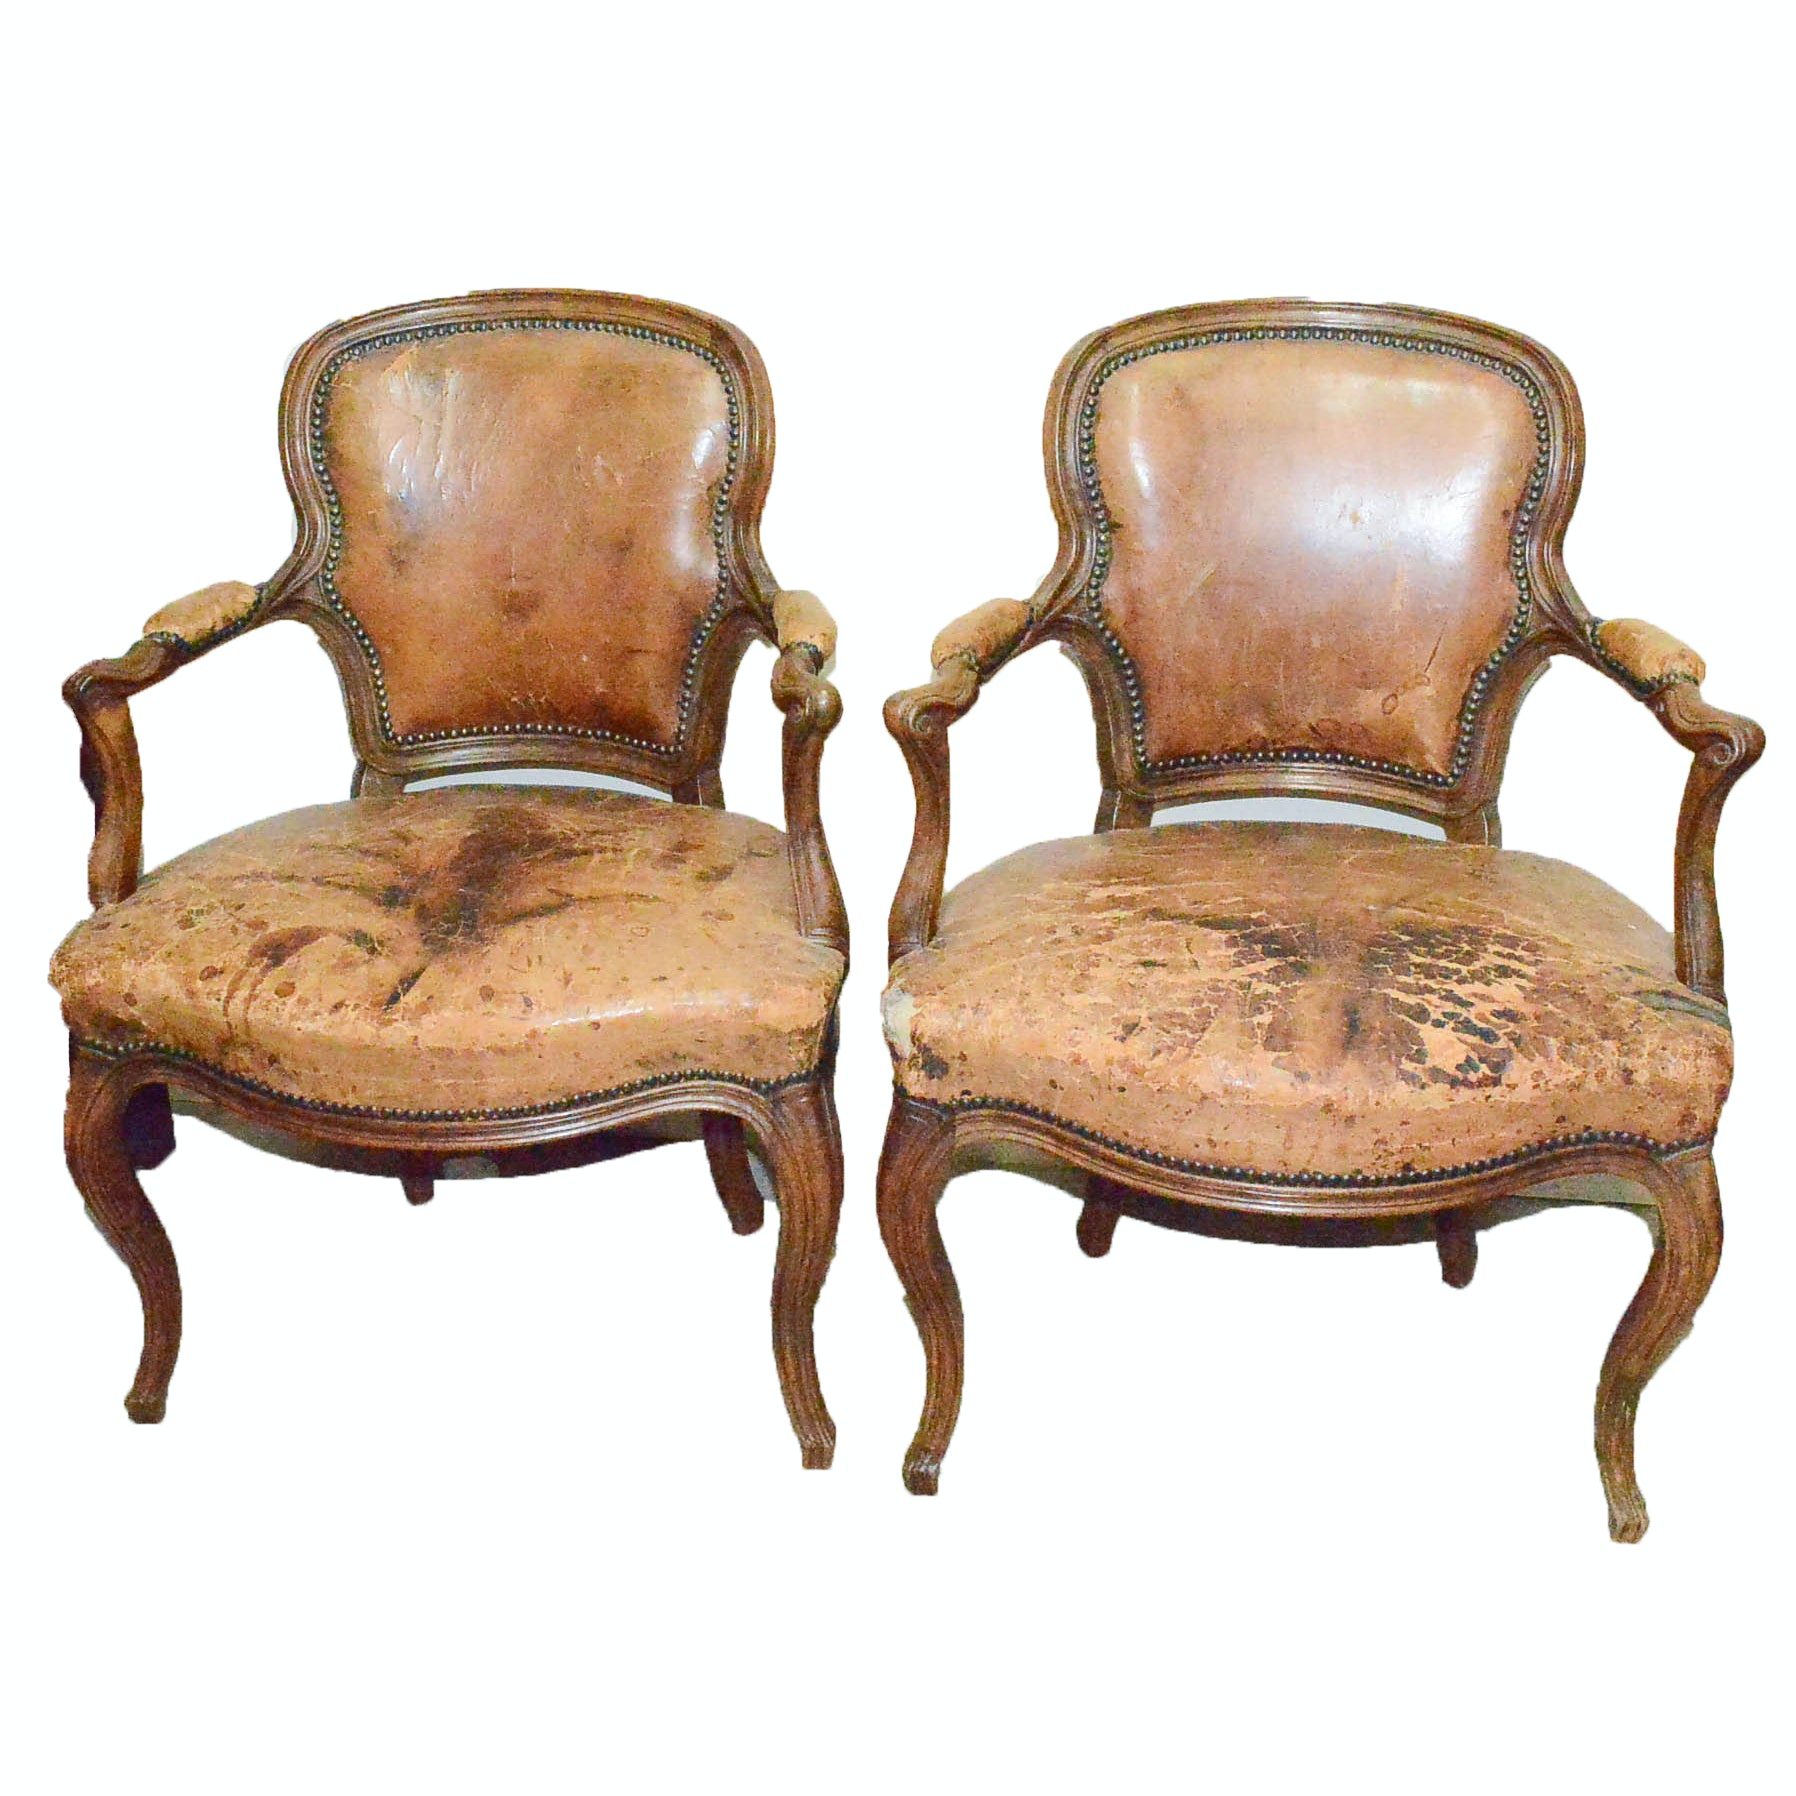 Pair of Antique Louis XVI Style Leather Bergere Chairs